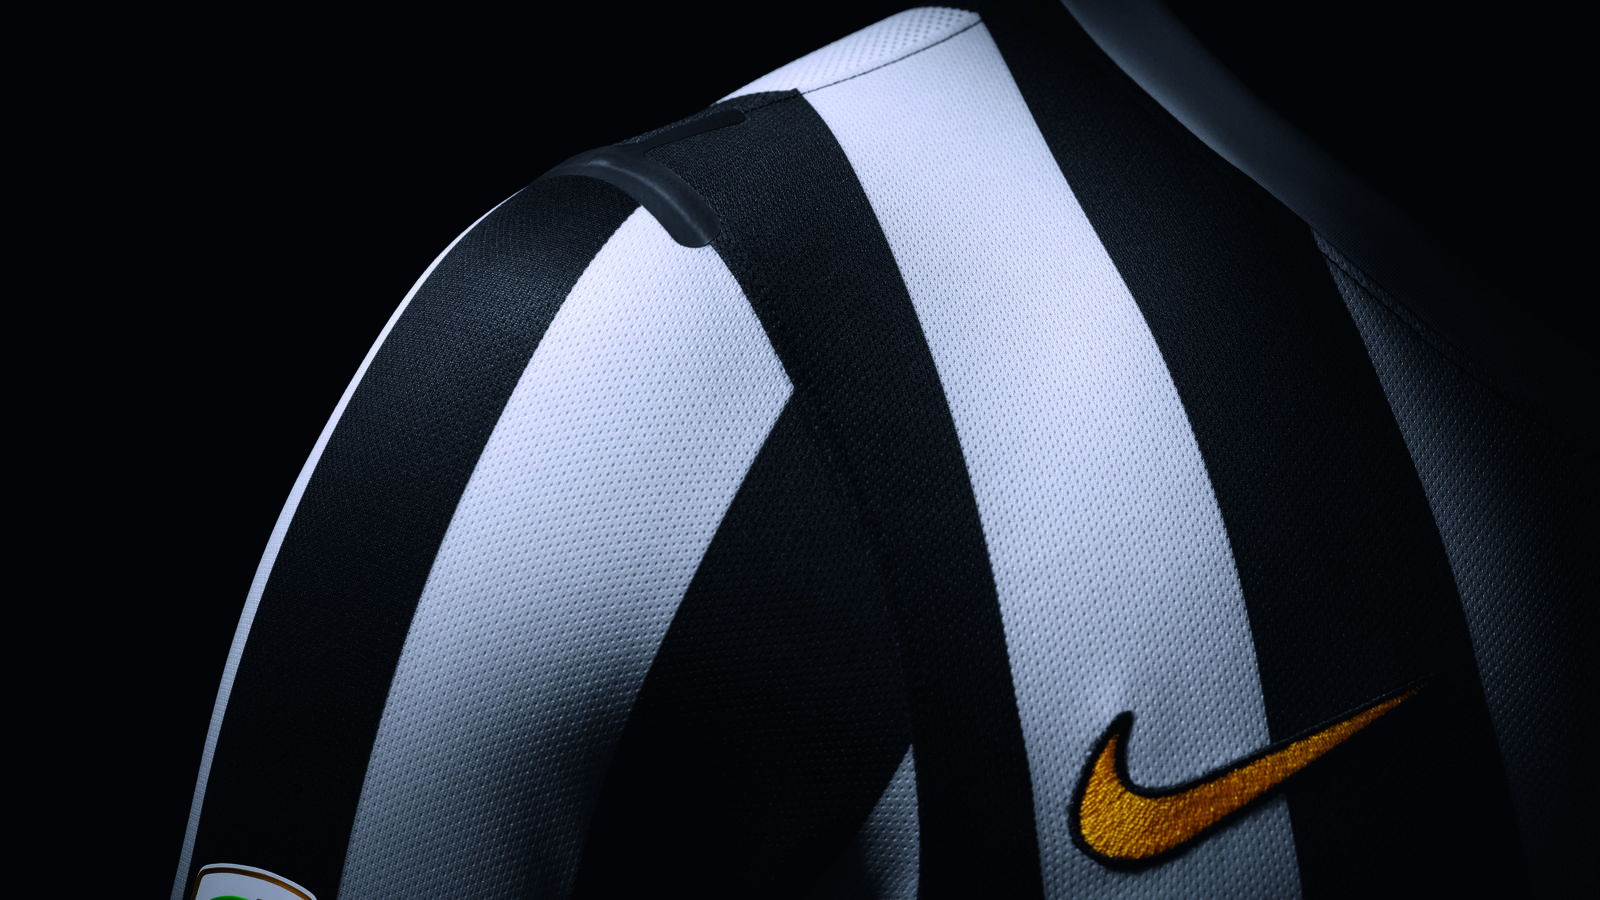 New Juventus Home Kit By Nike Features Tailored Fit 1980s Aesthetic Nike News